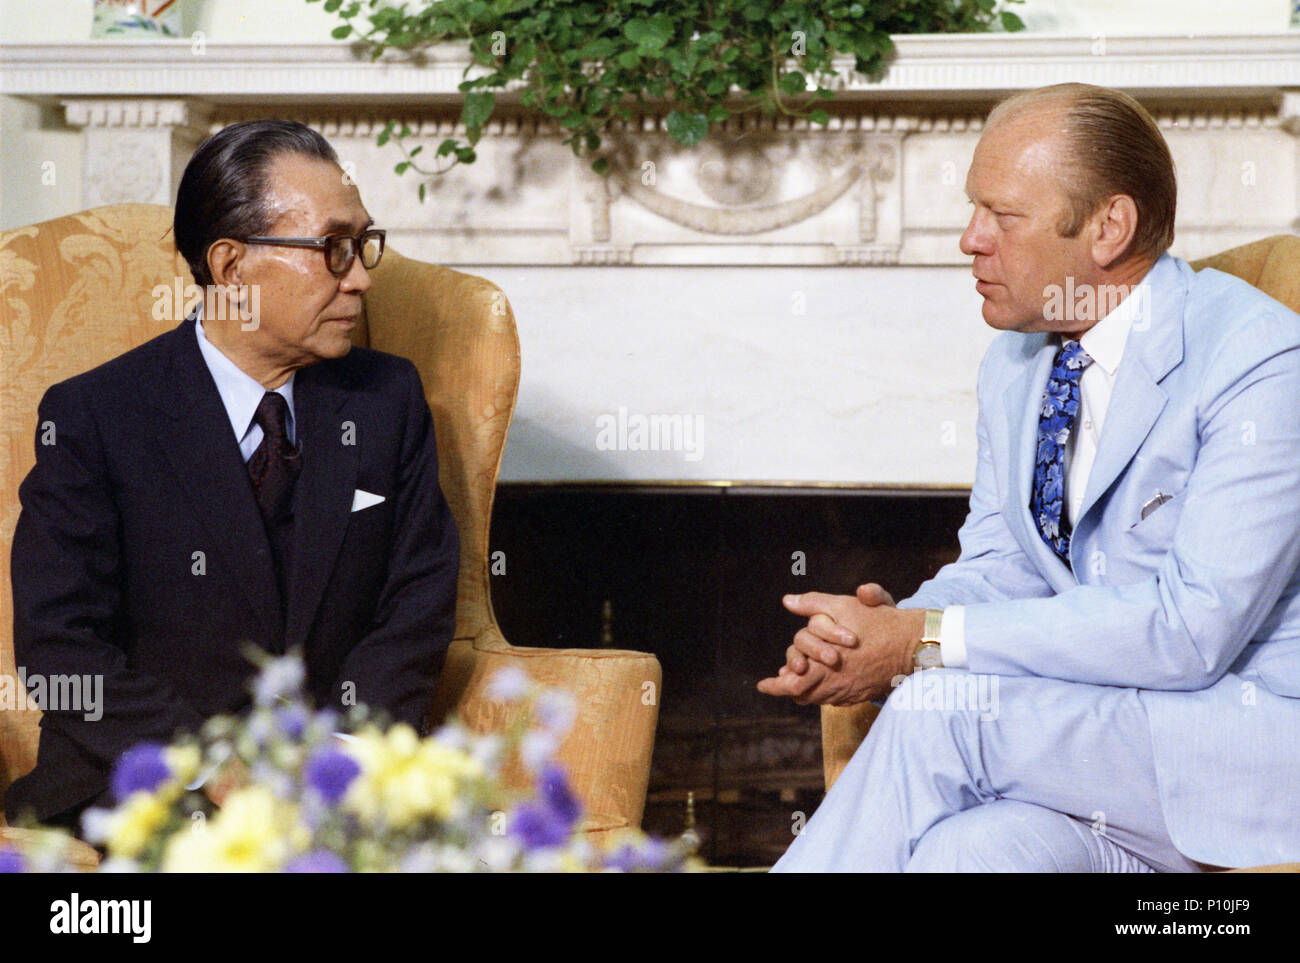 1975, August 5 – The Oval Office – The White House –  Gerald R. Ford, Takeo Miki – seated near fireplace, talking – Meeting with Prime Minister of Japan - Stock Image